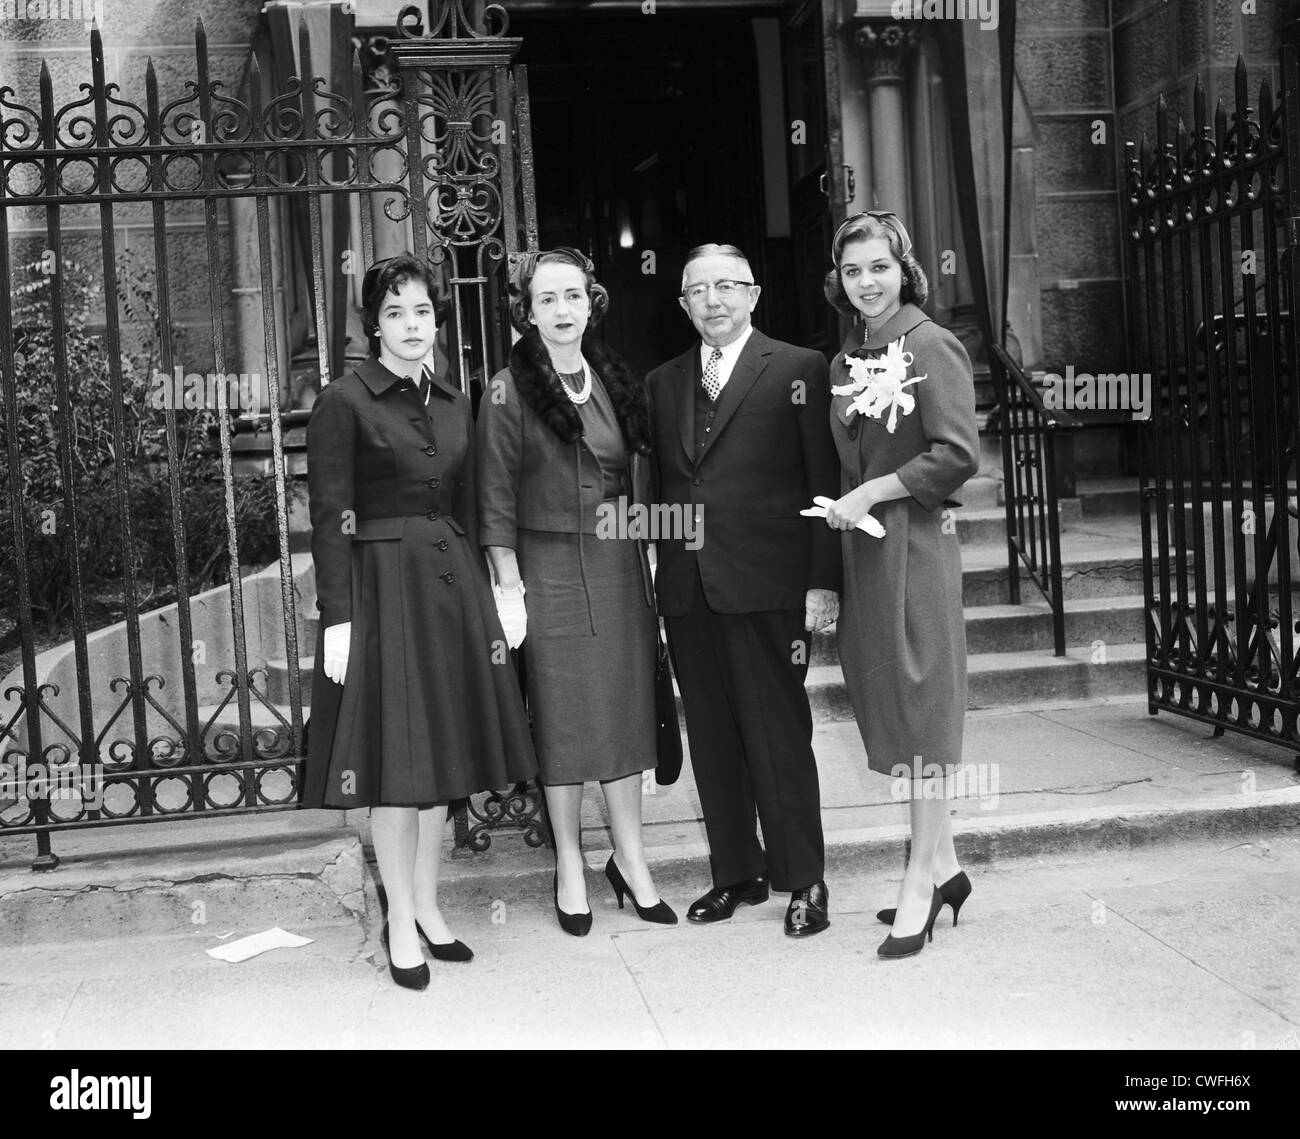 Mr & Mrs Lester Stockard with daughters Susan (actress Stockard Channing) and Lesly at Leslys' wedding , - Stock Image